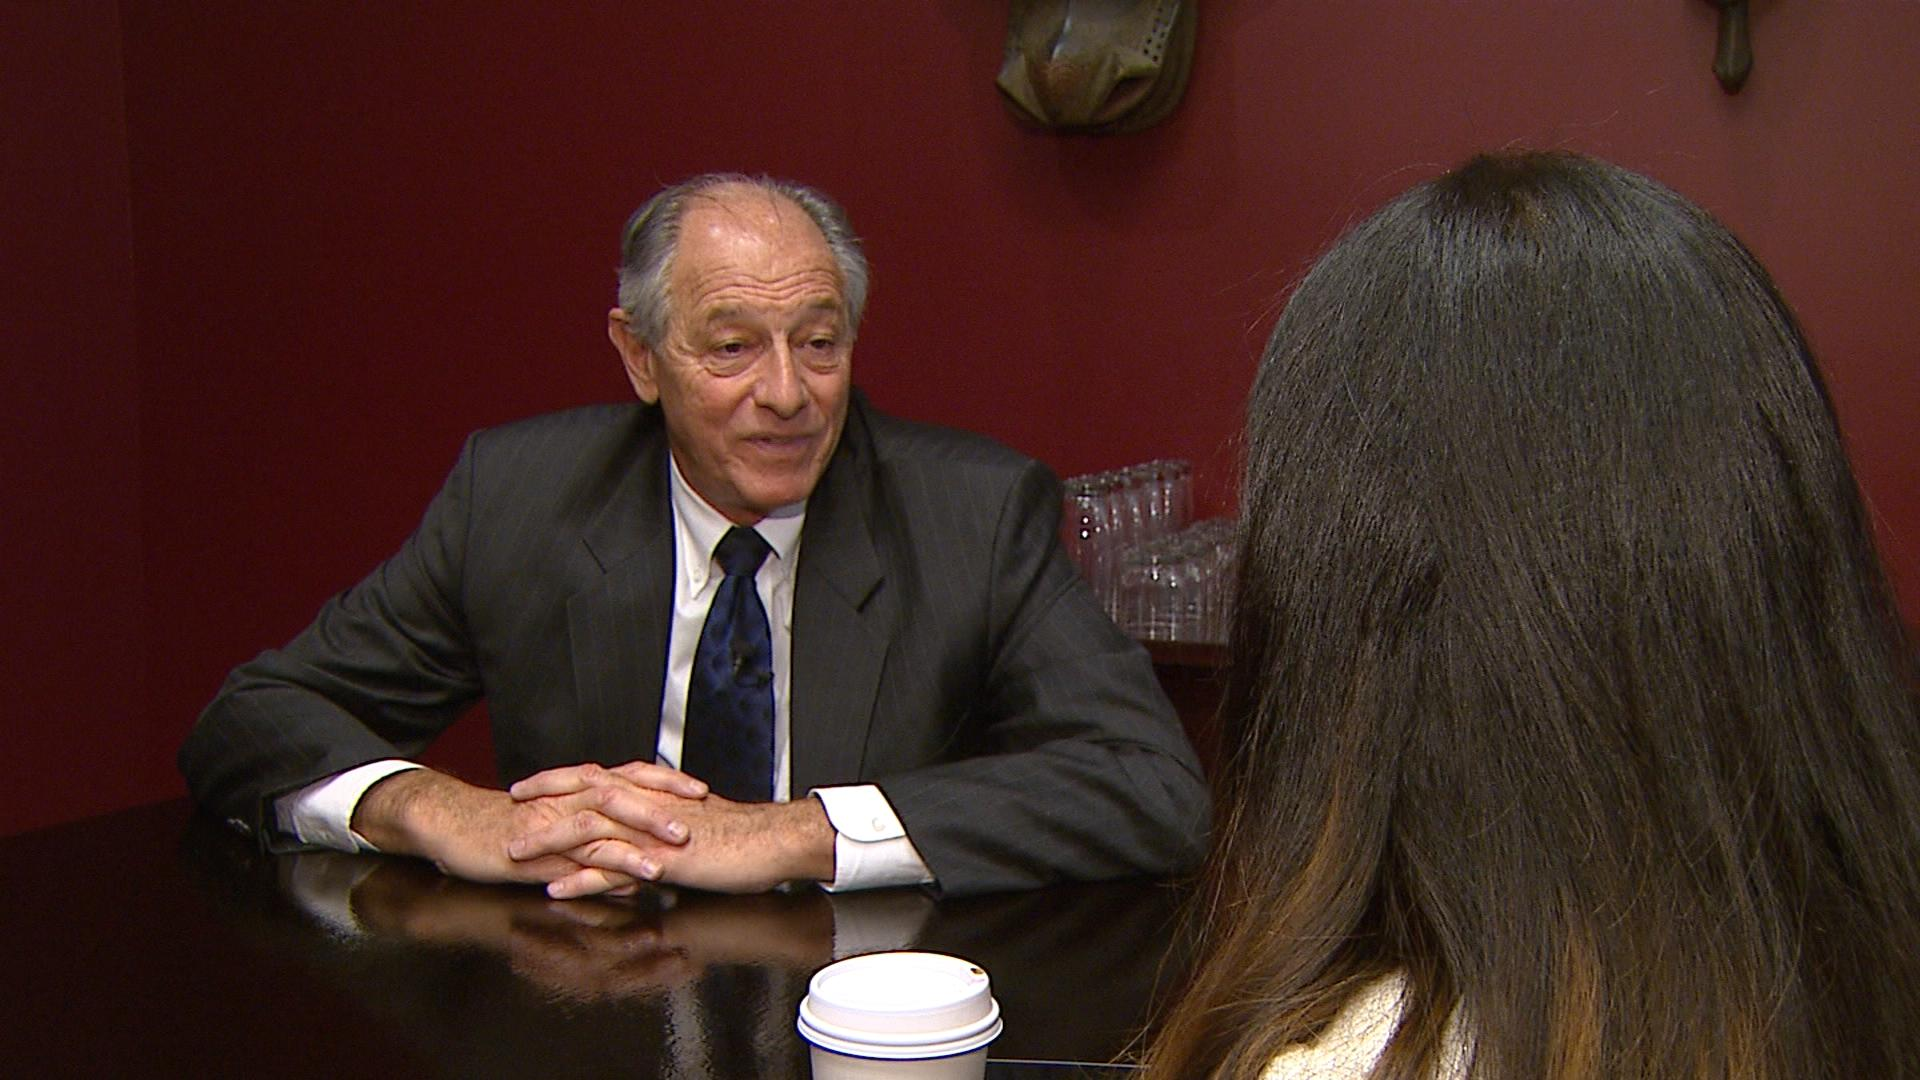 Attorney David Lane is interviewed by CBS4's Andrea Flores (credit: CBS)